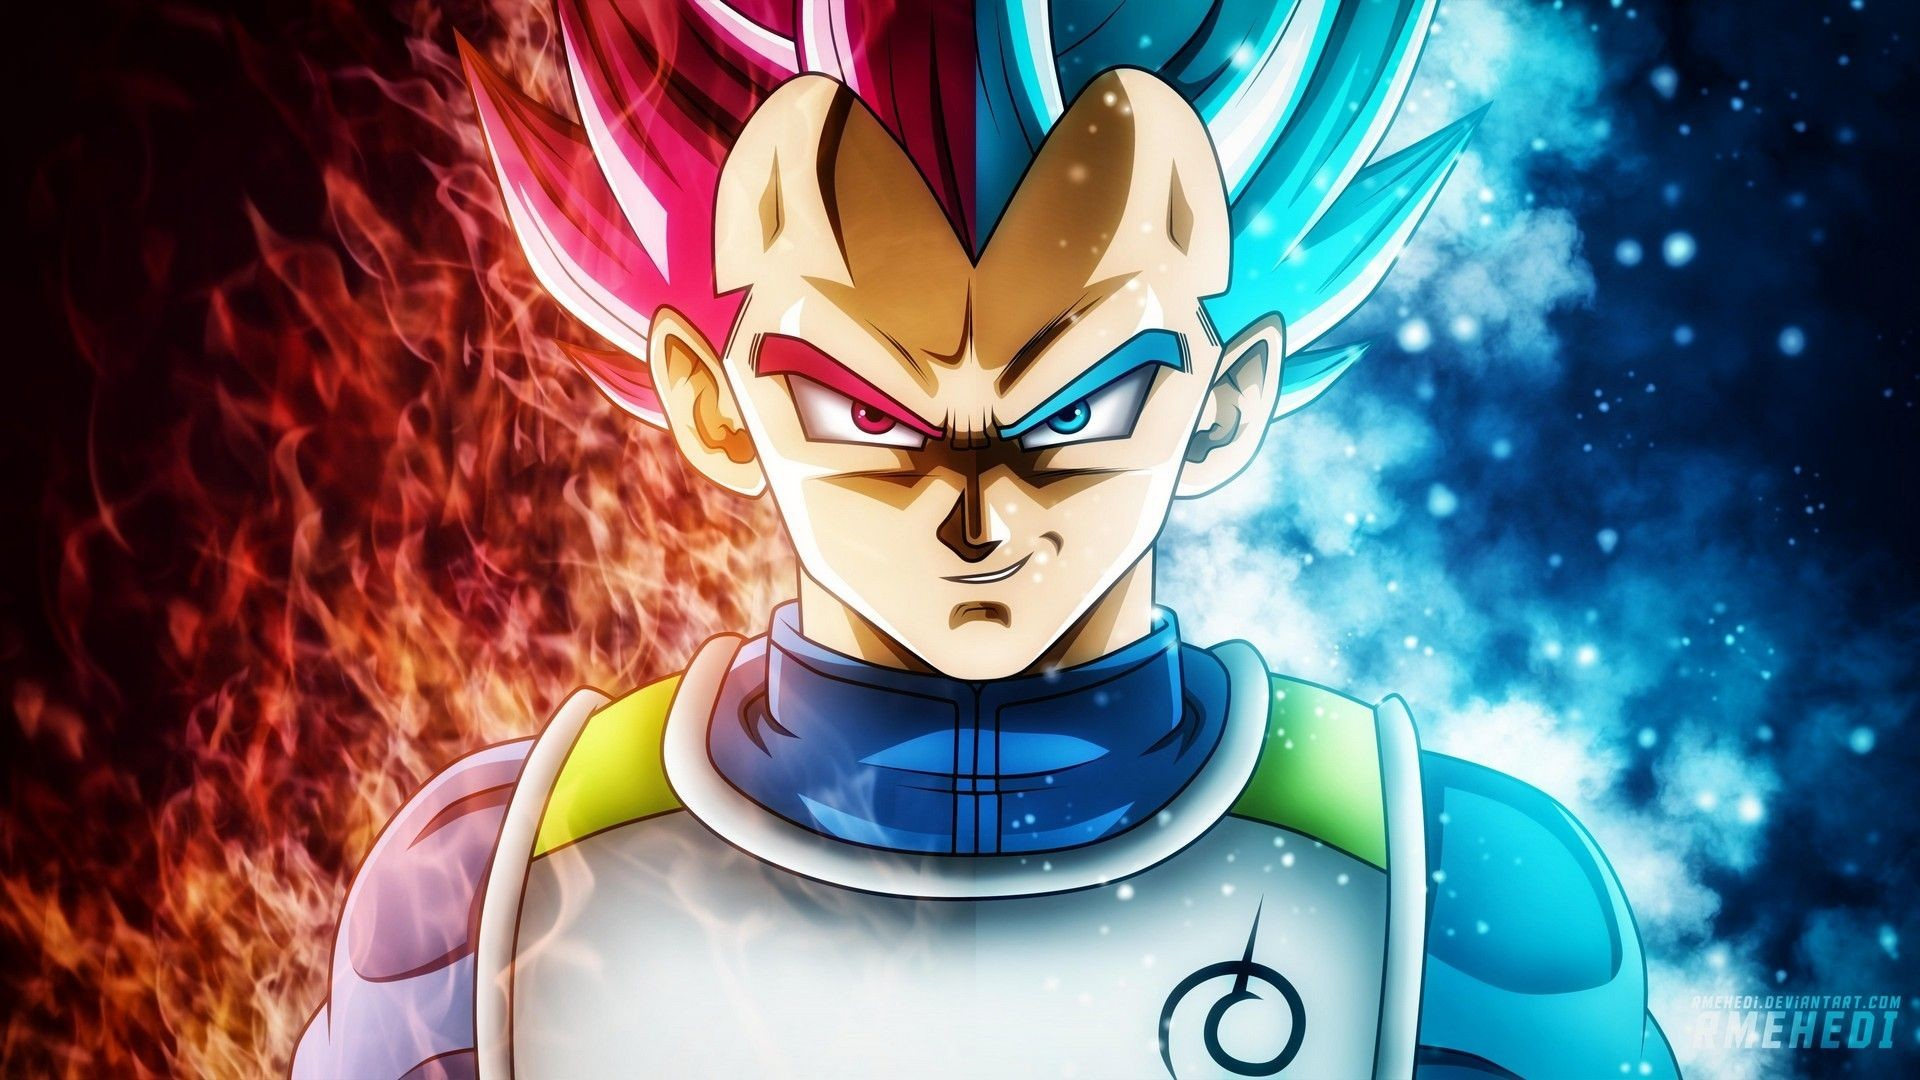 Vegeta Wallpaper for Android (76+ images)